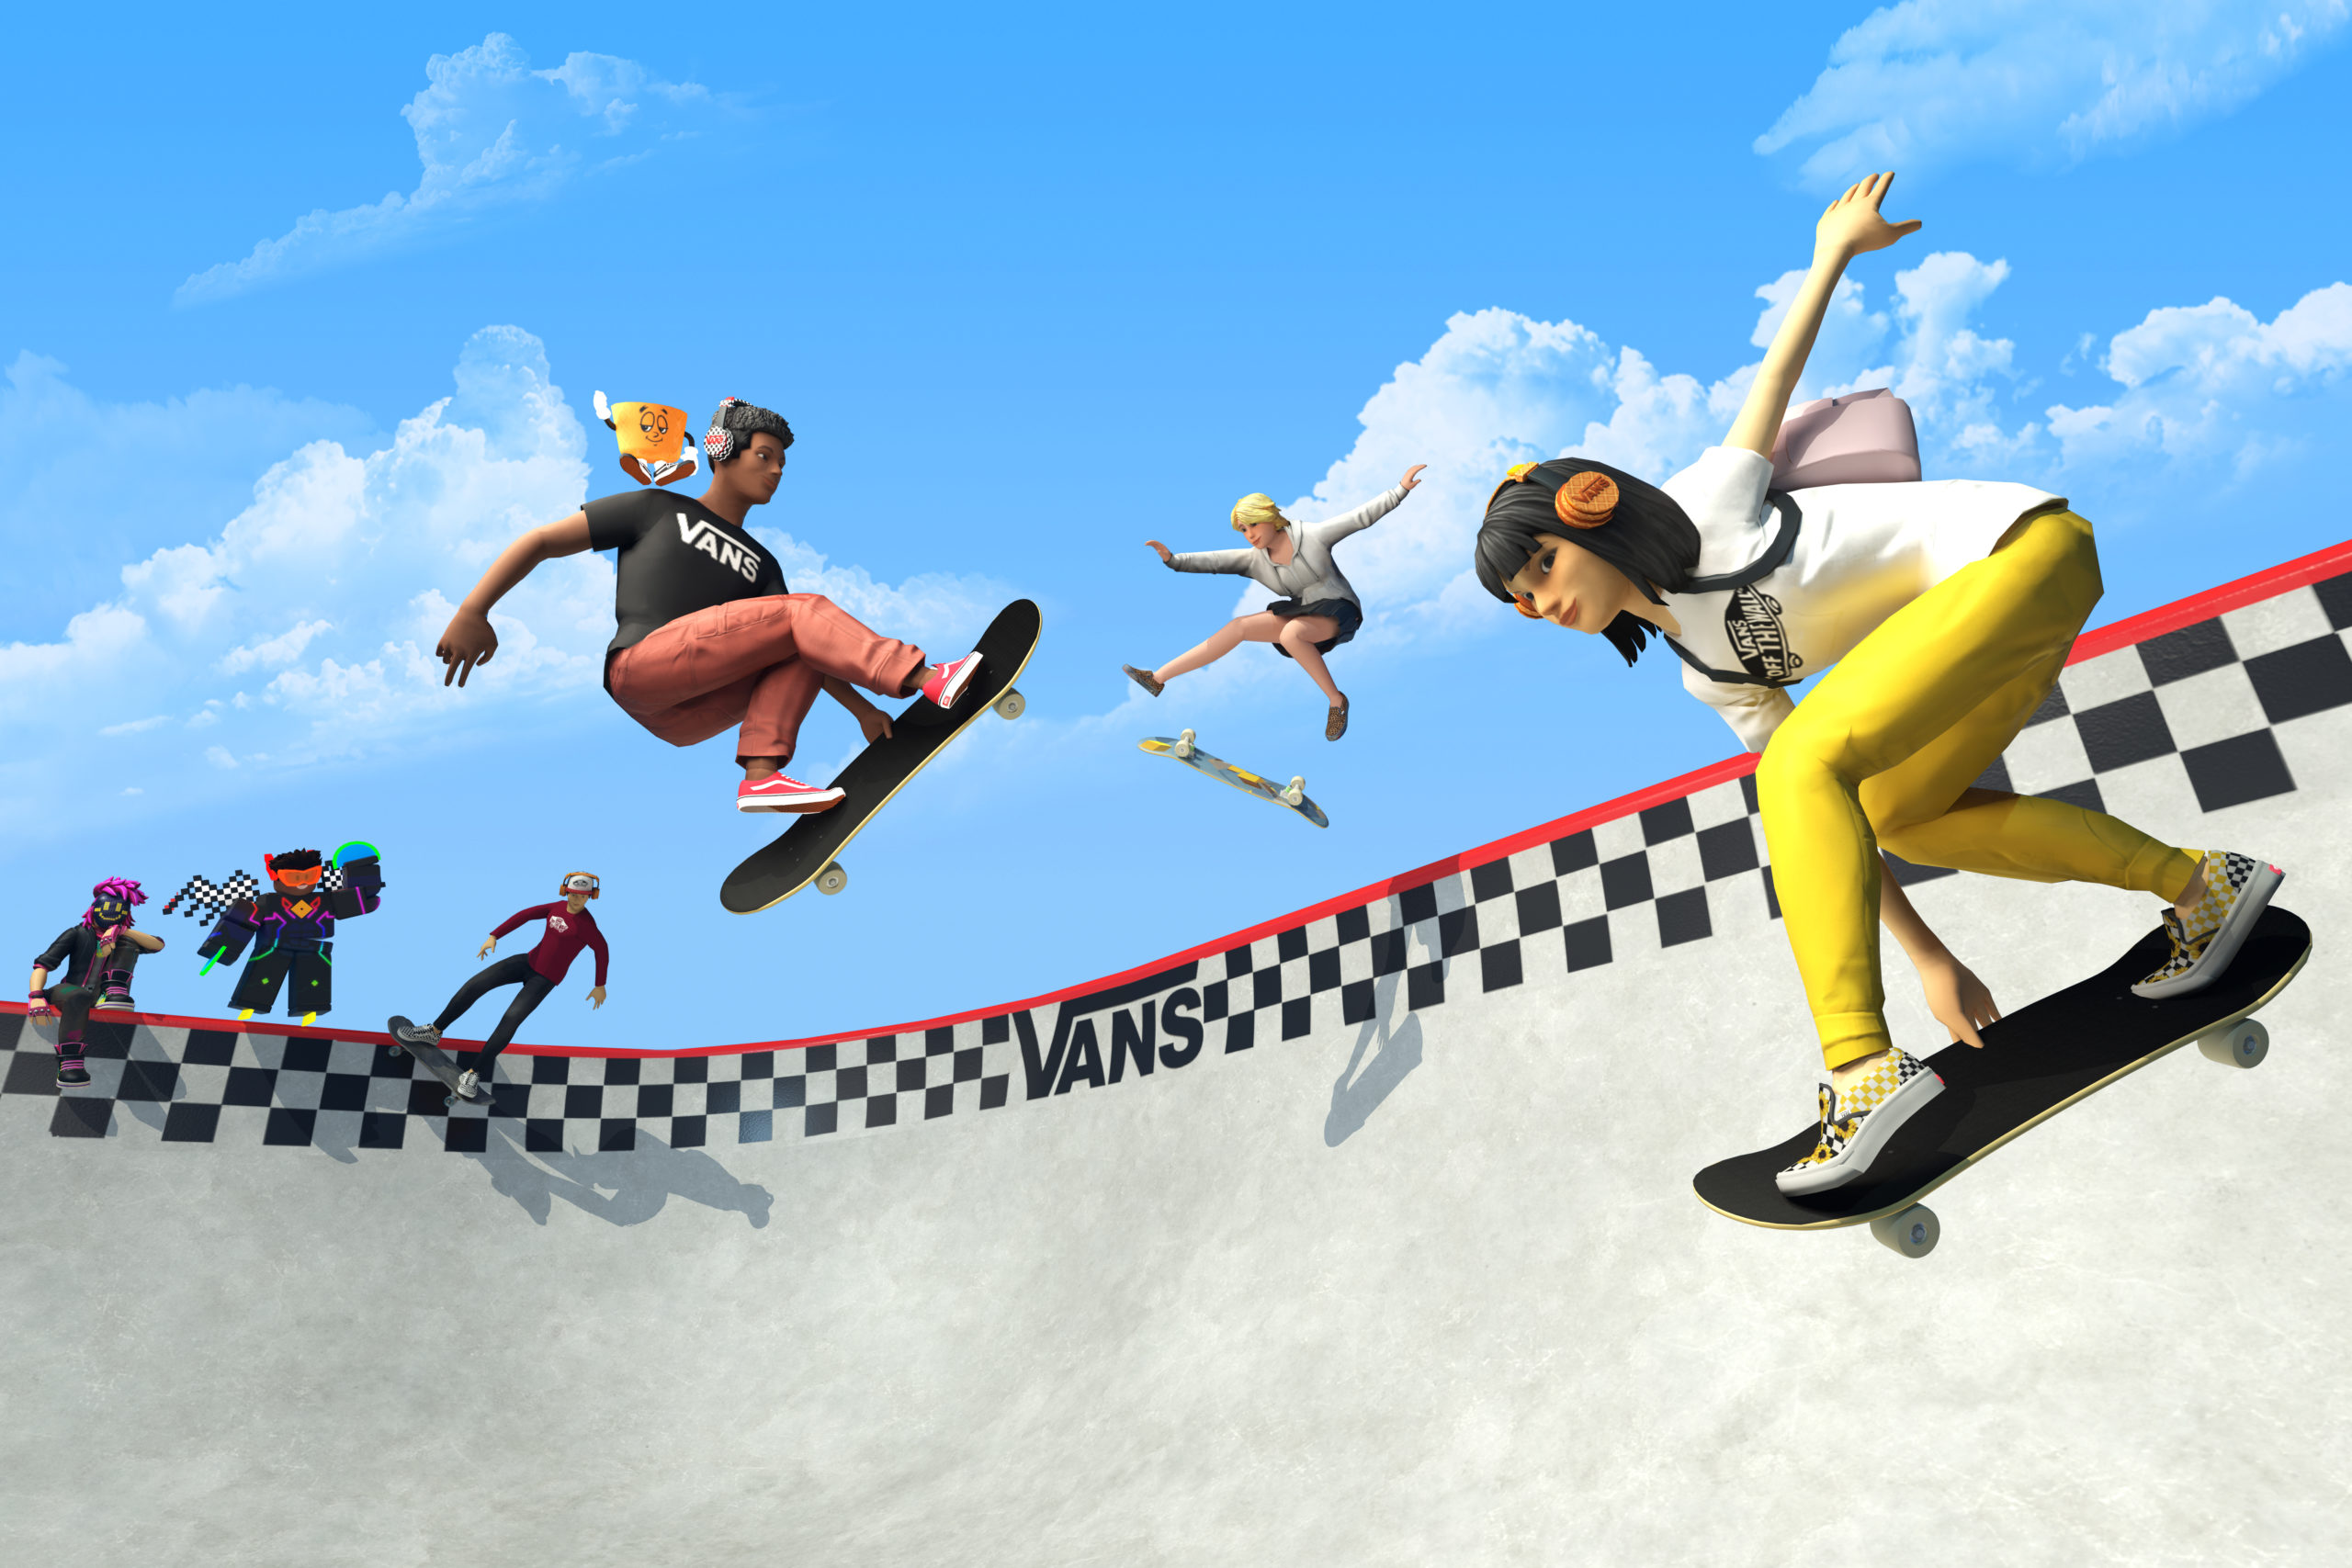 """vans-launches-""""vans-world""""-skatepark-experience-in-the-roblox-metaverse"""